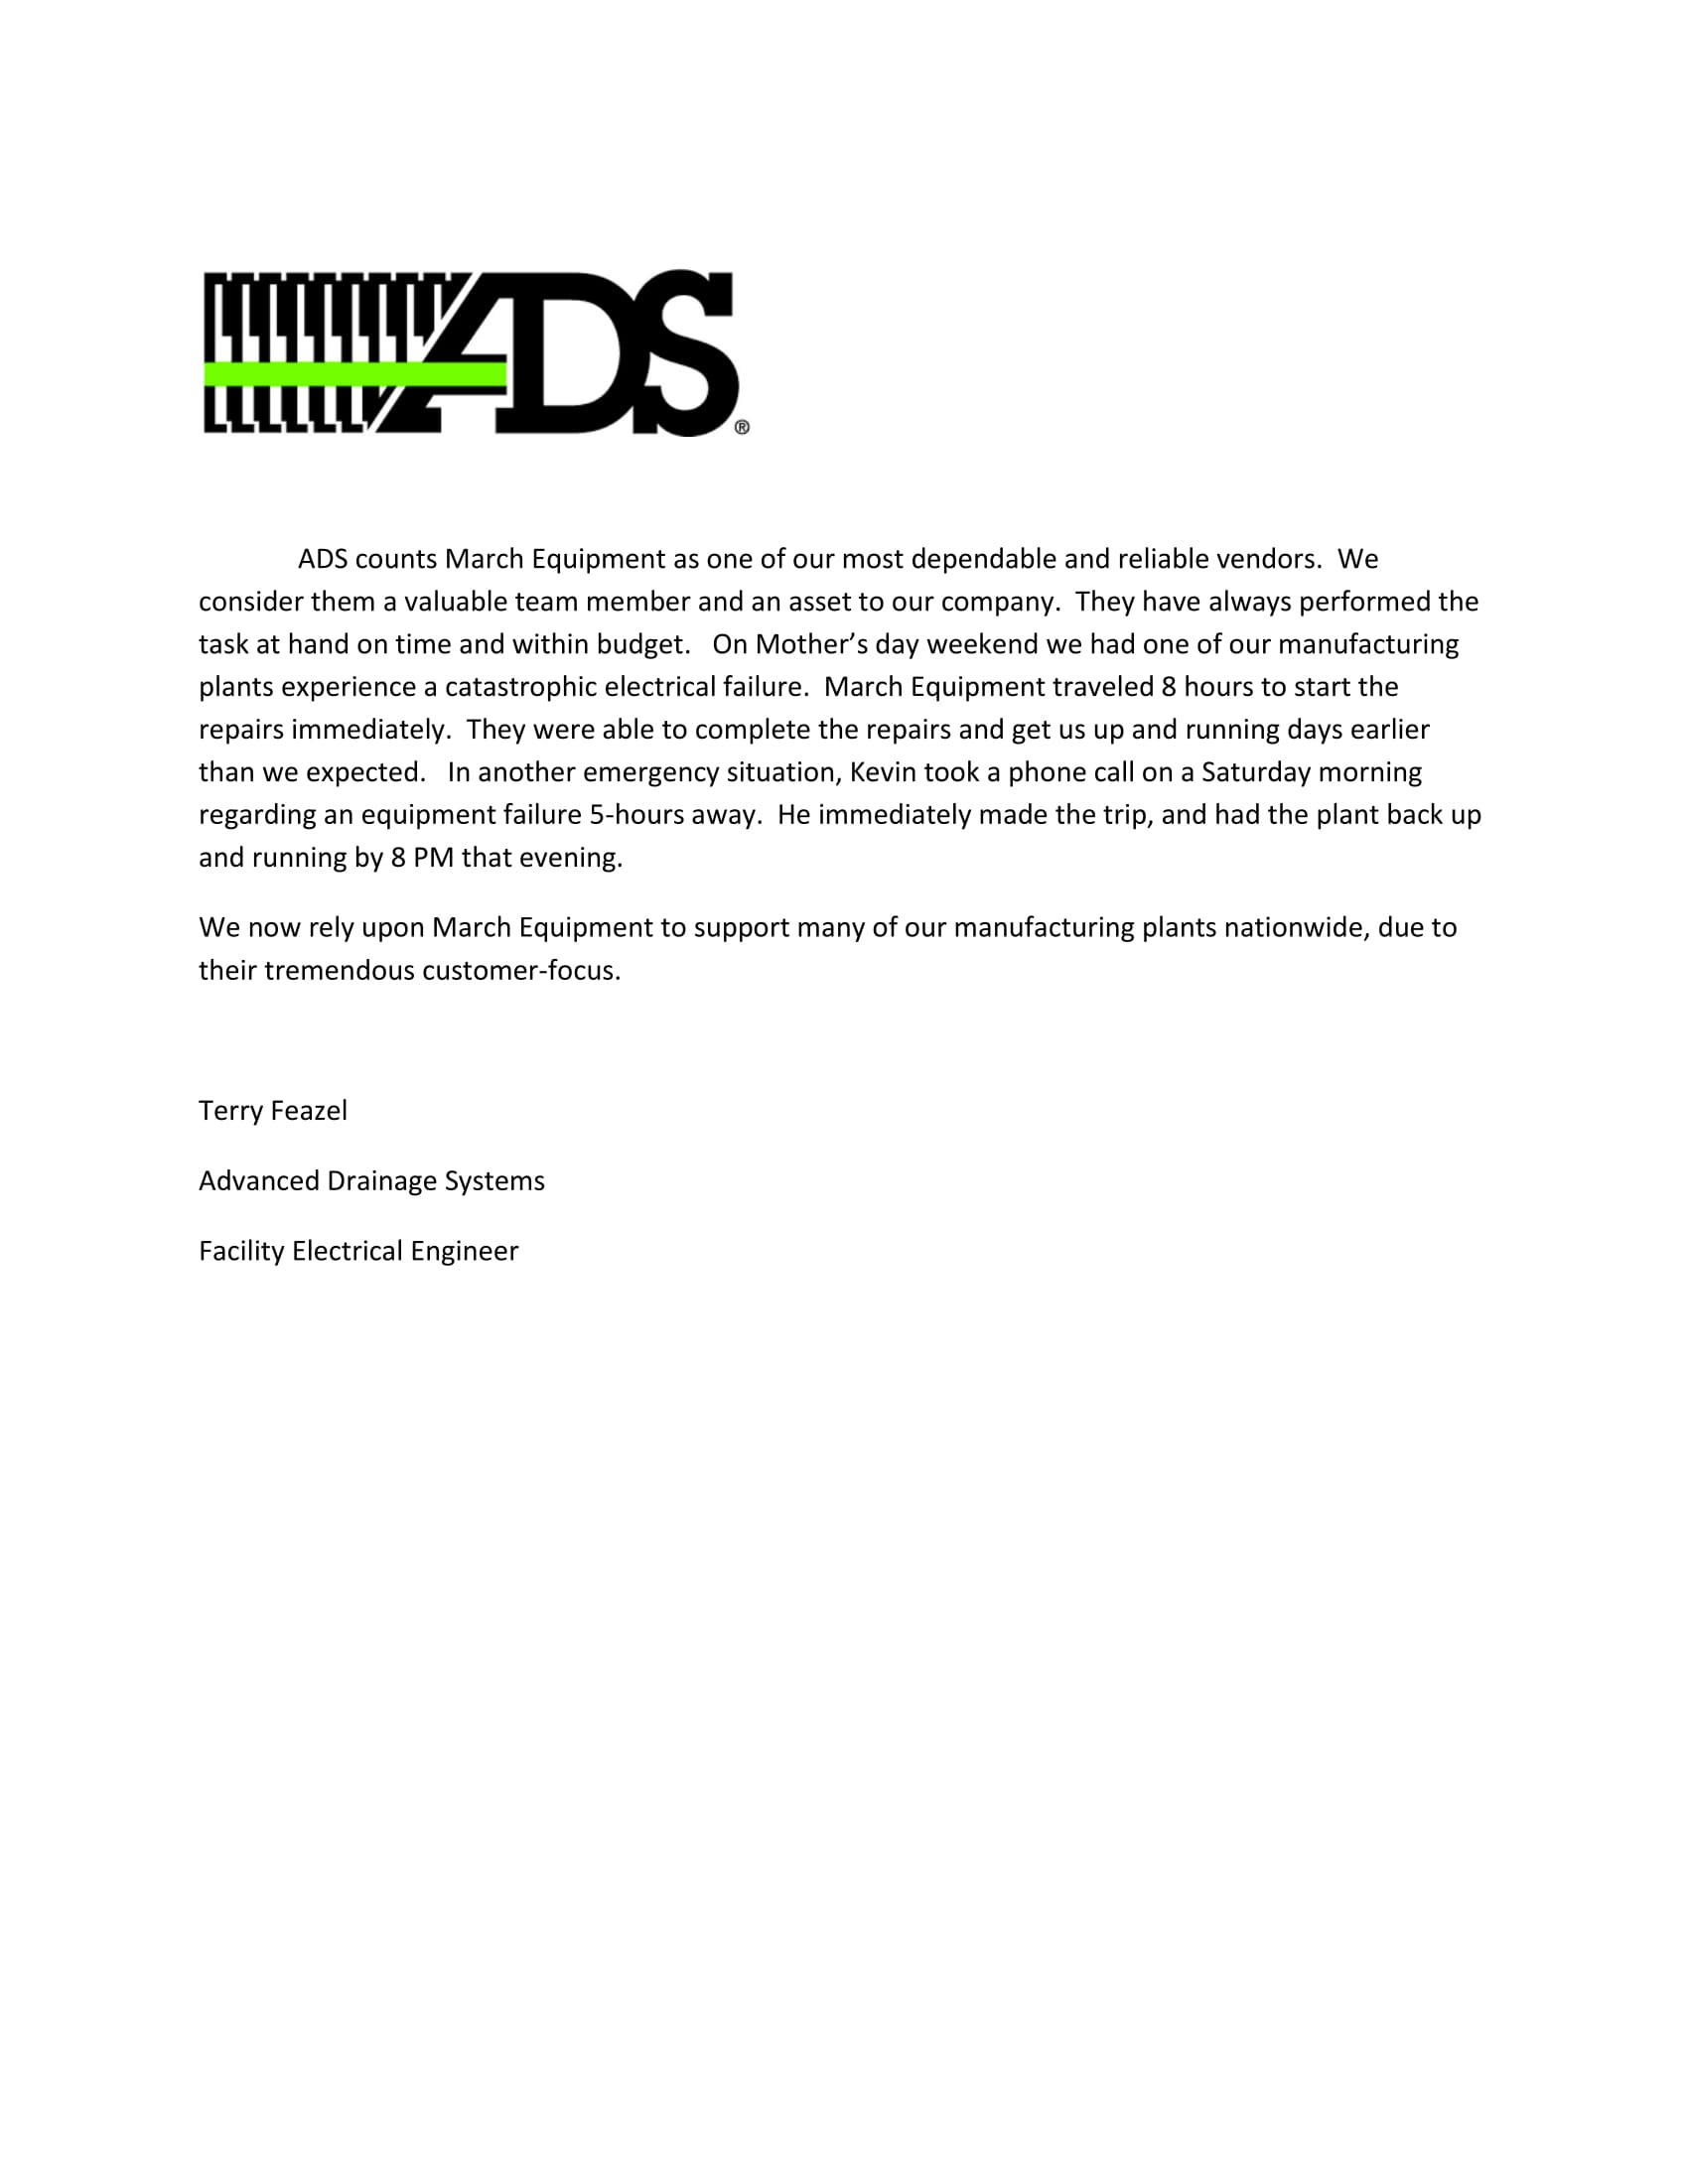 advanced_drainage_systems_letter